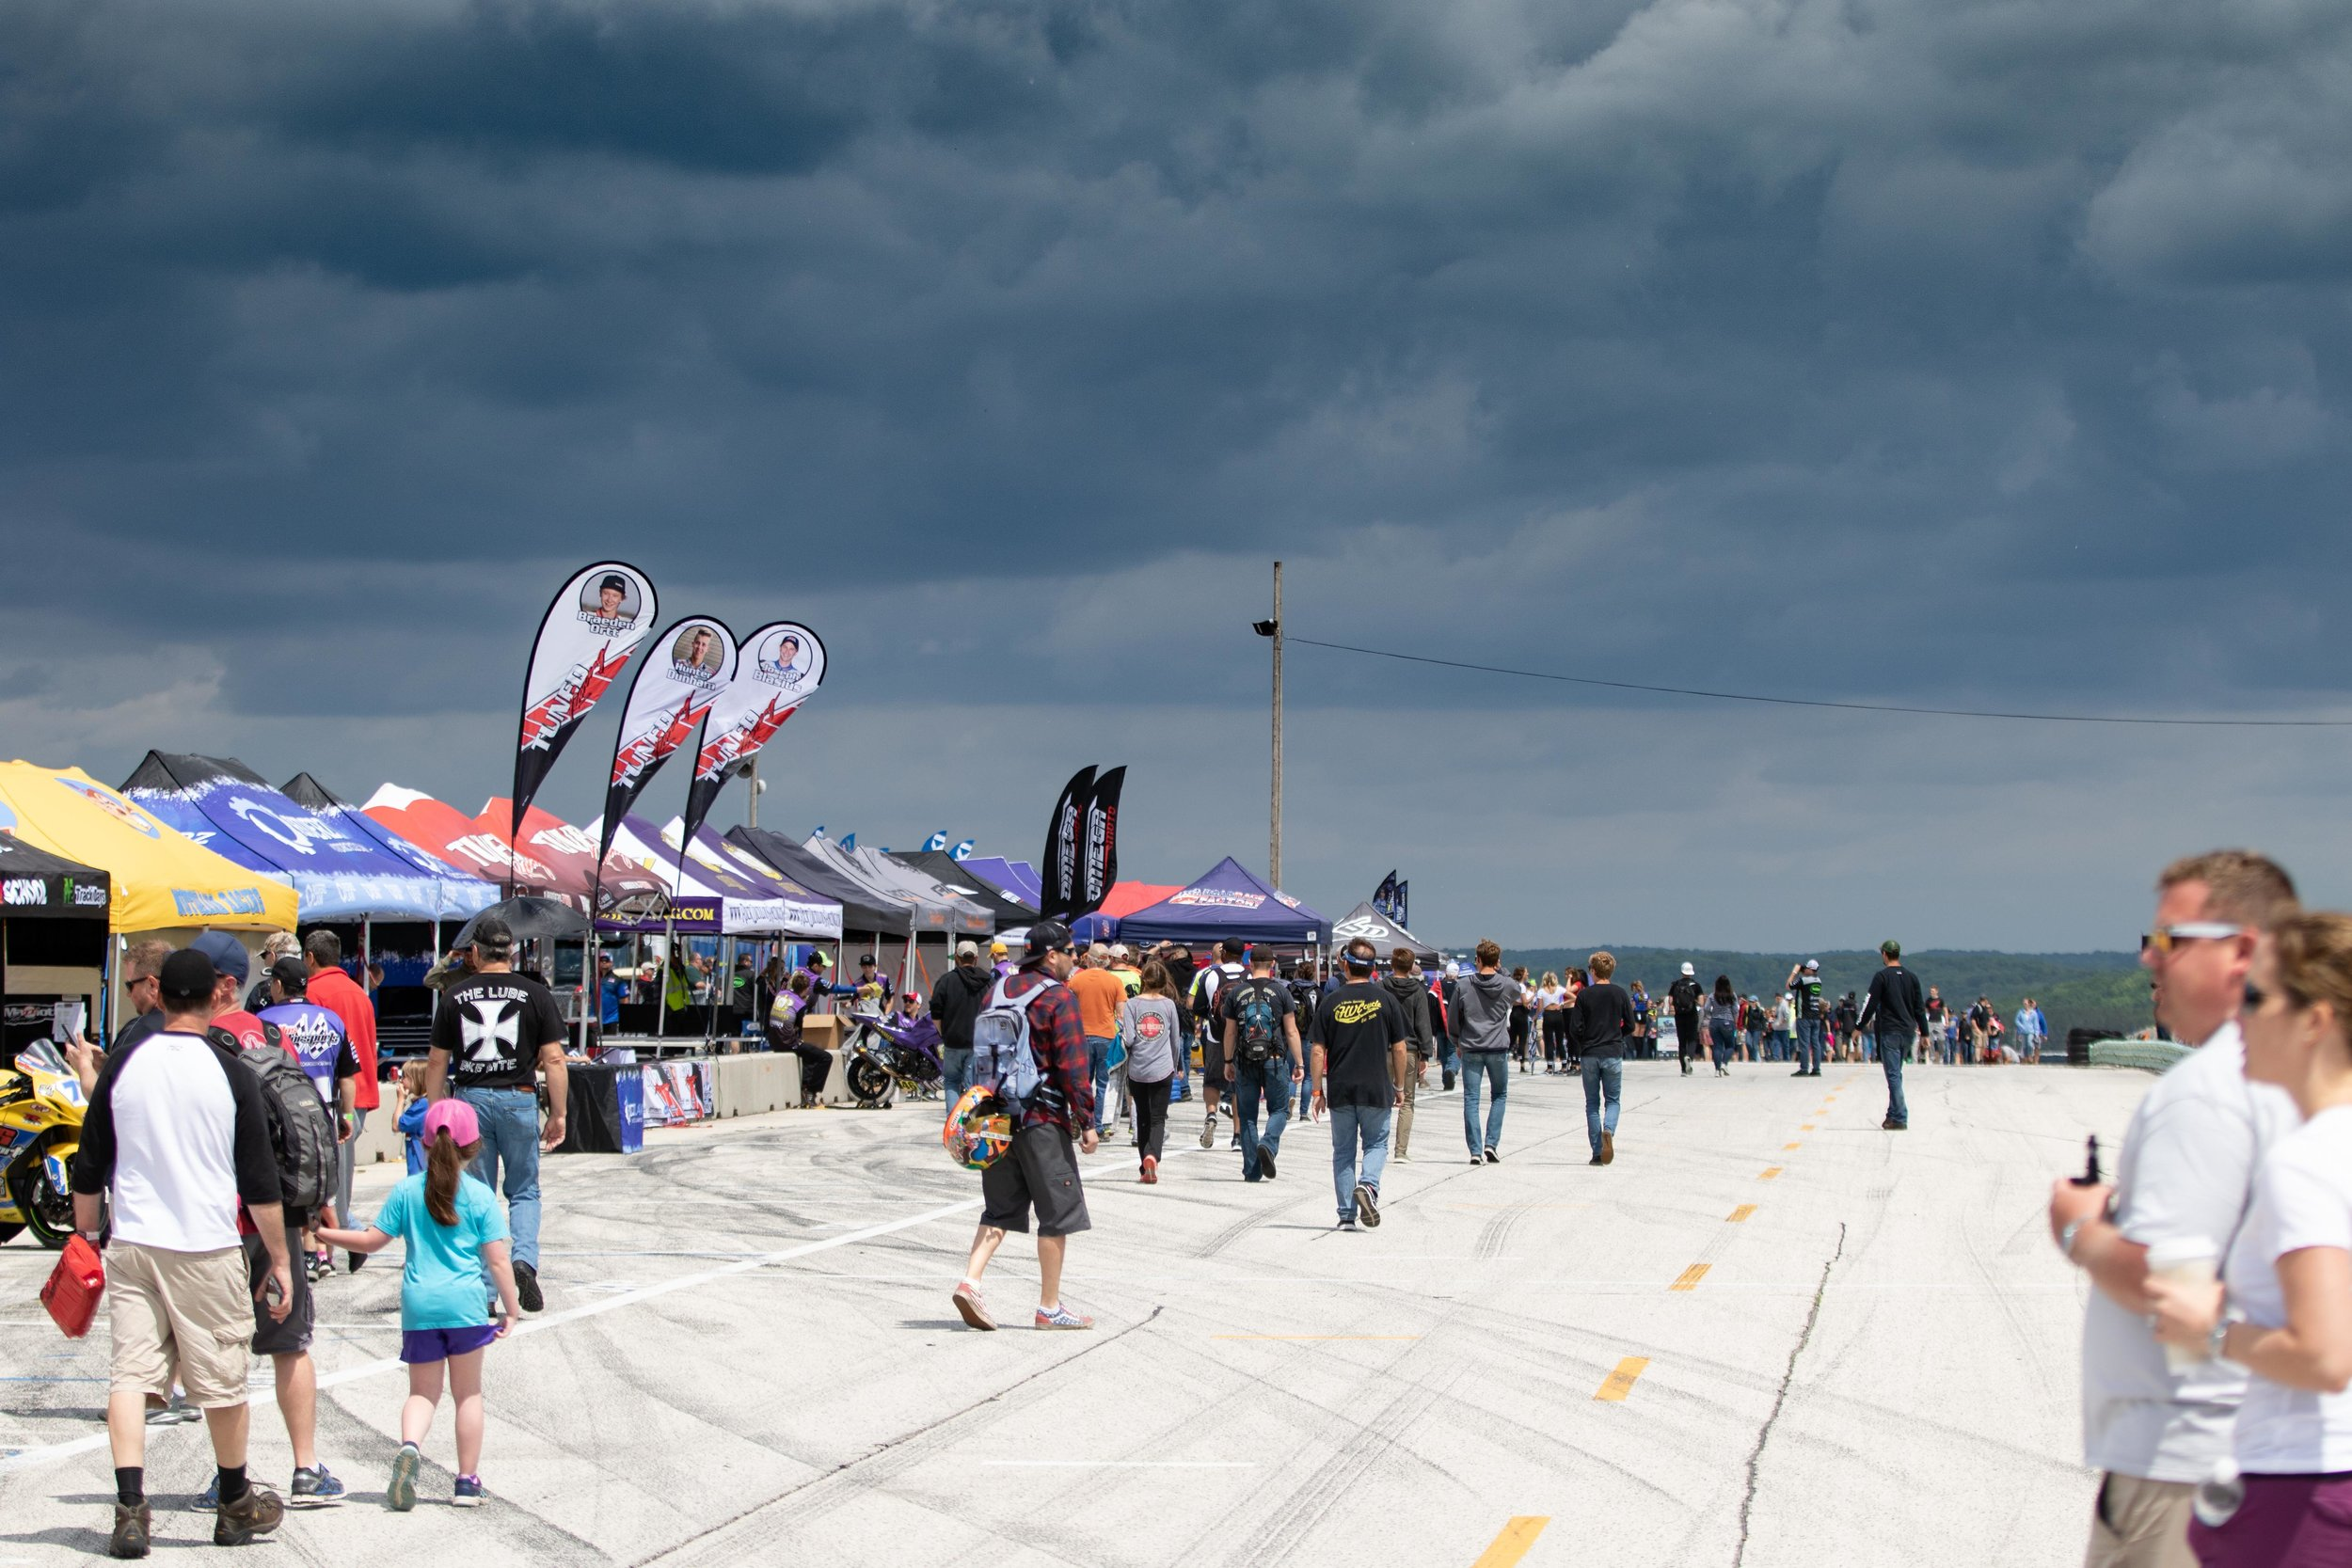 Clouds rolling in during the Fan Walk session on Sunday.